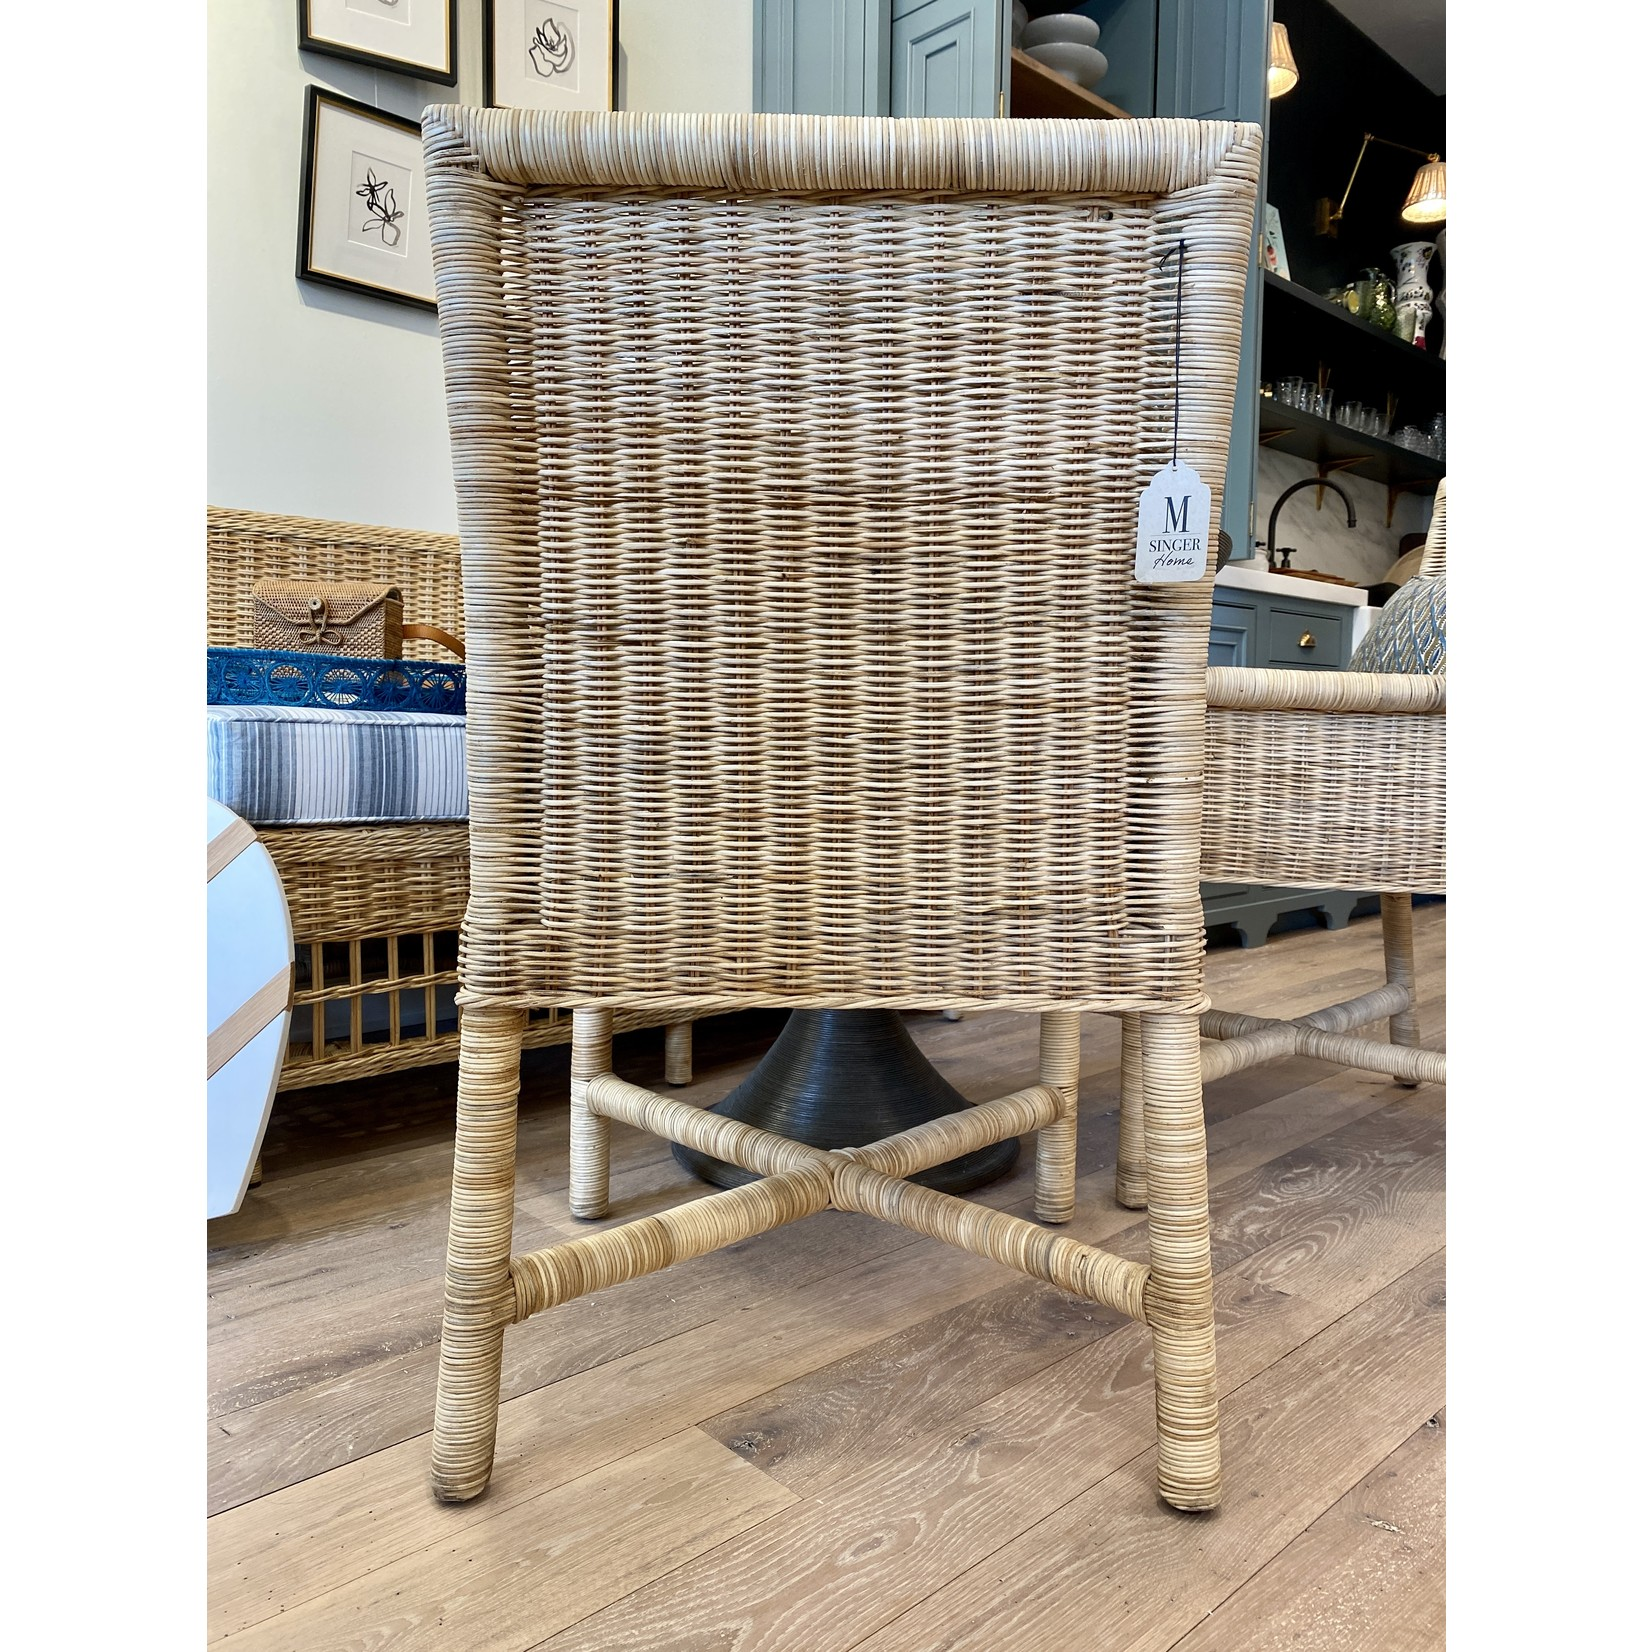 Mainly Baskets Eastham Chair